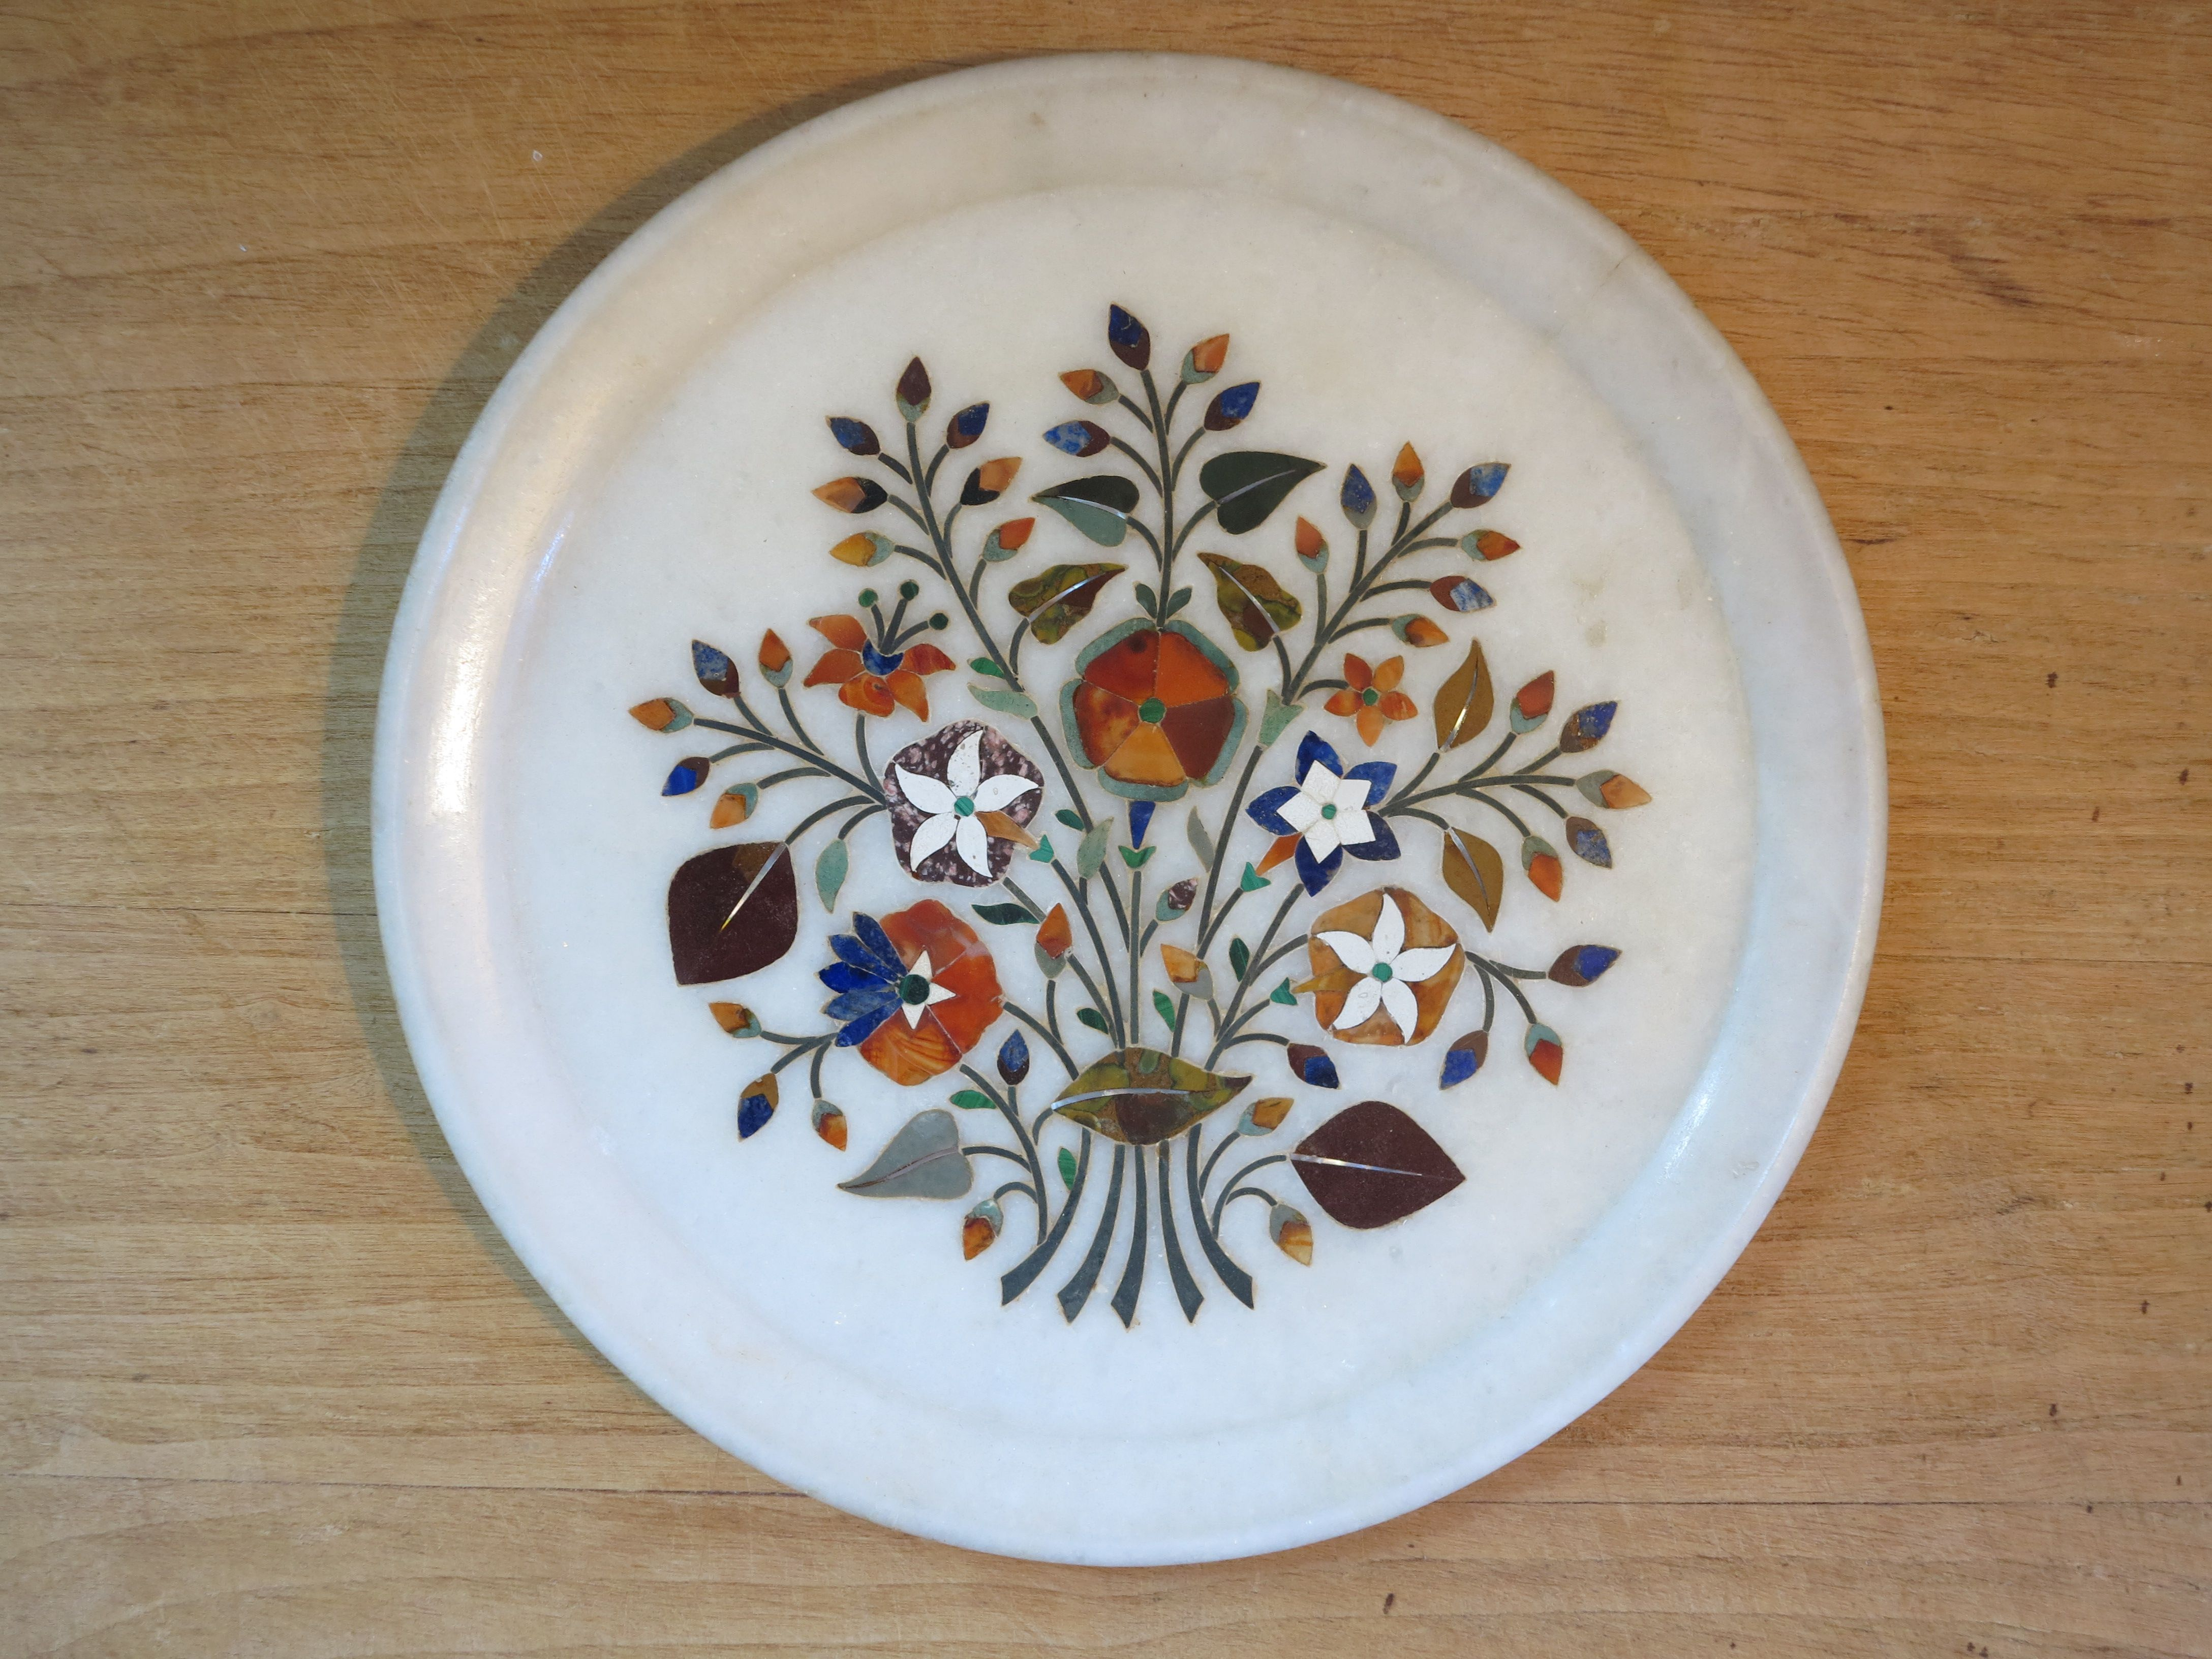 Late 19th century pietra dura plate from Agra, North India